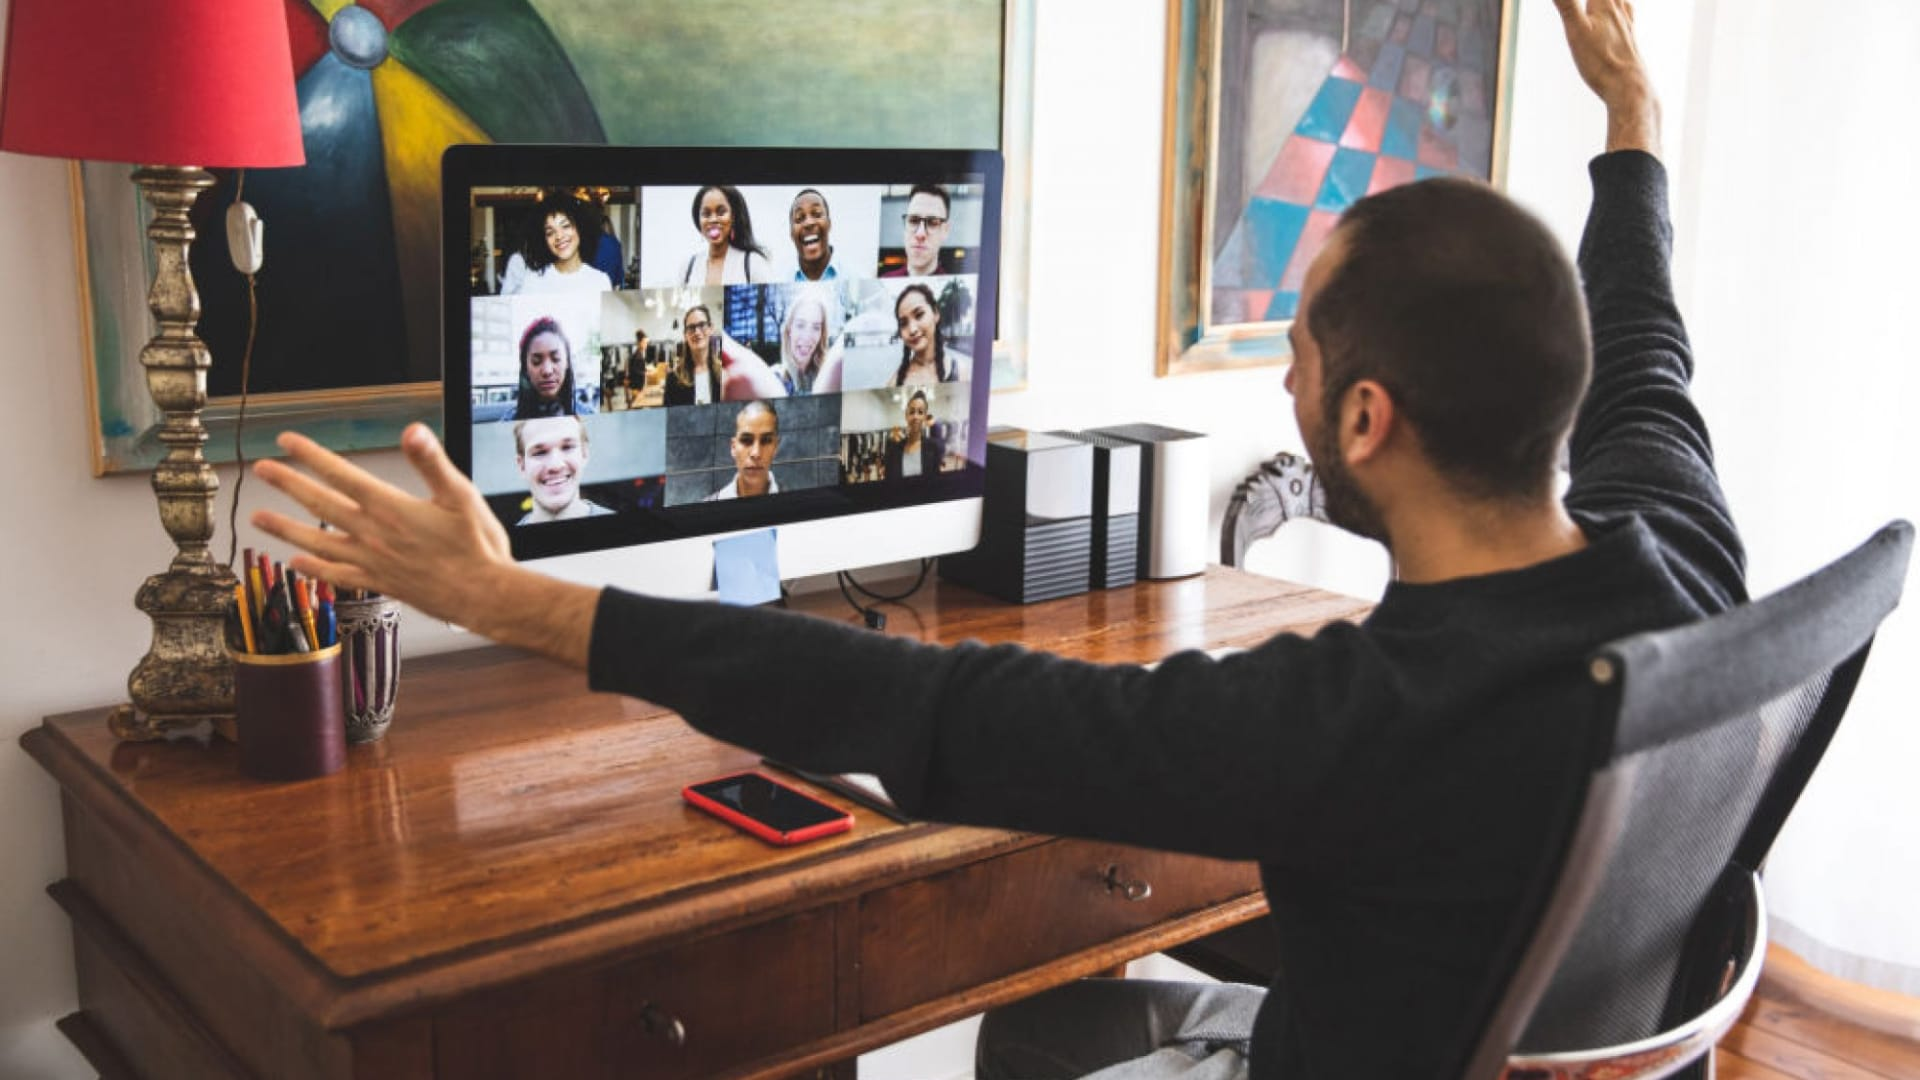 Best Practices to Avoid Remote Work Burnout